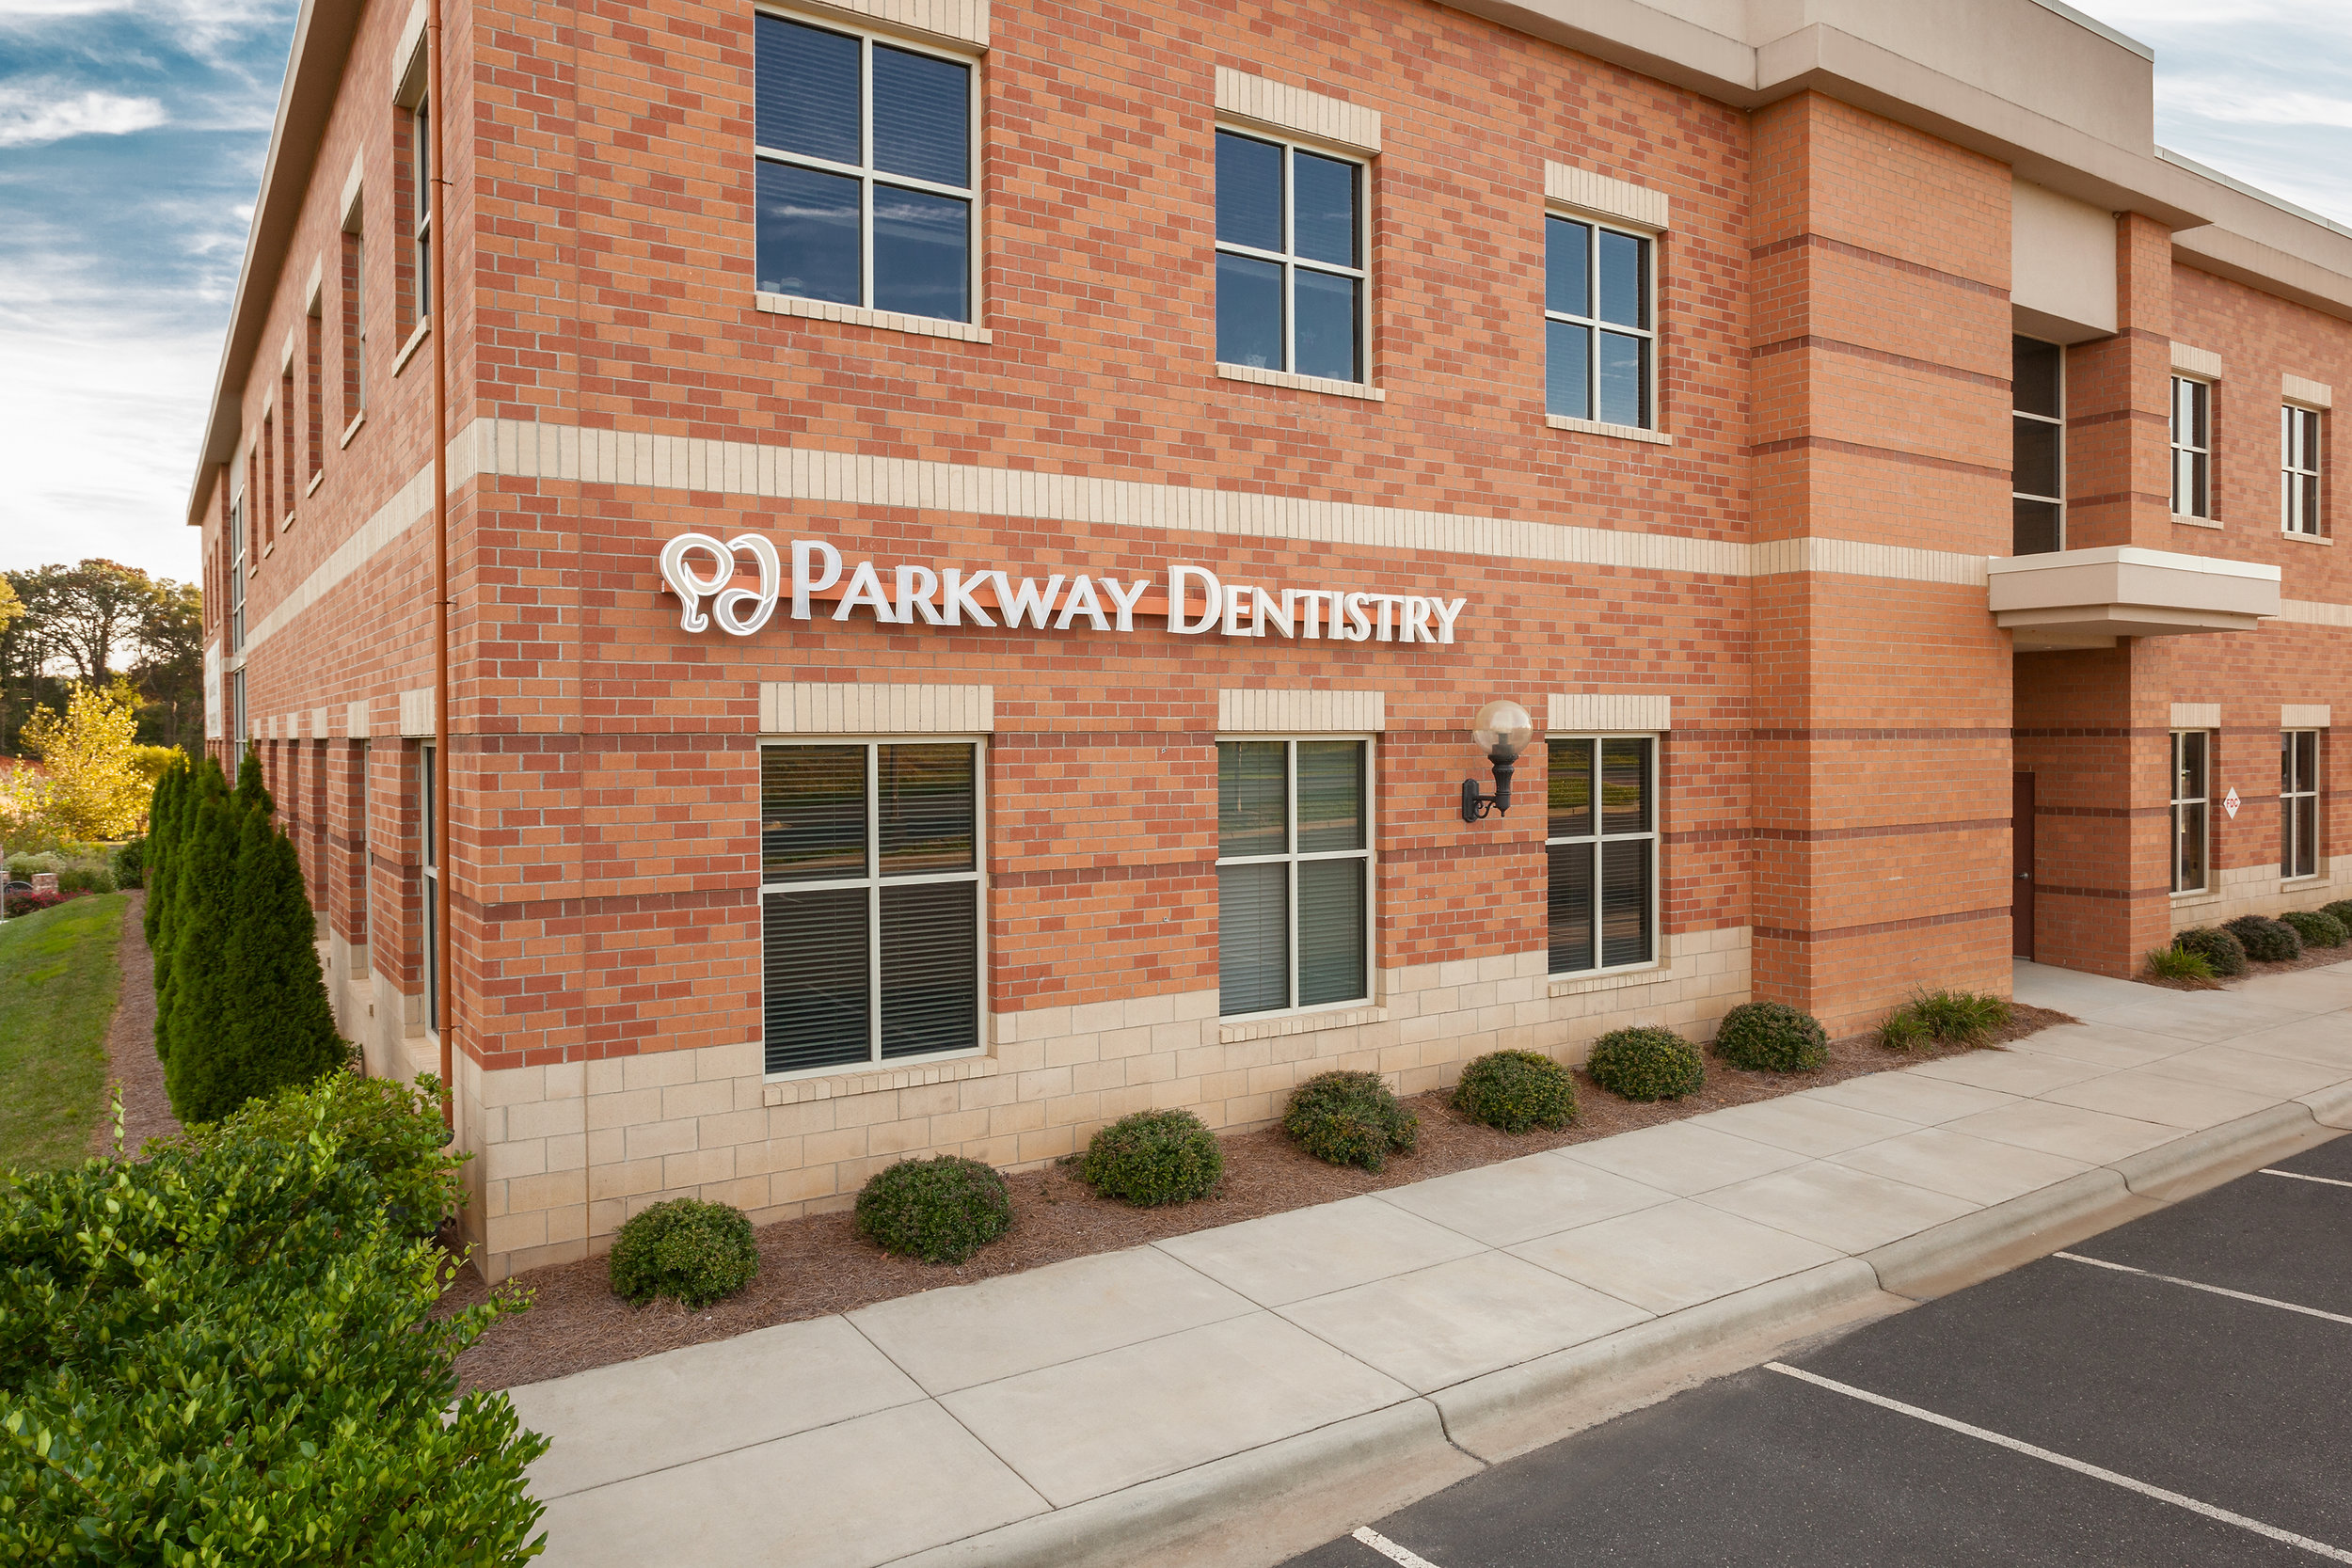 The PWC Medical Office is a 28,000 sq. ft. building with medical, dental, and office space.